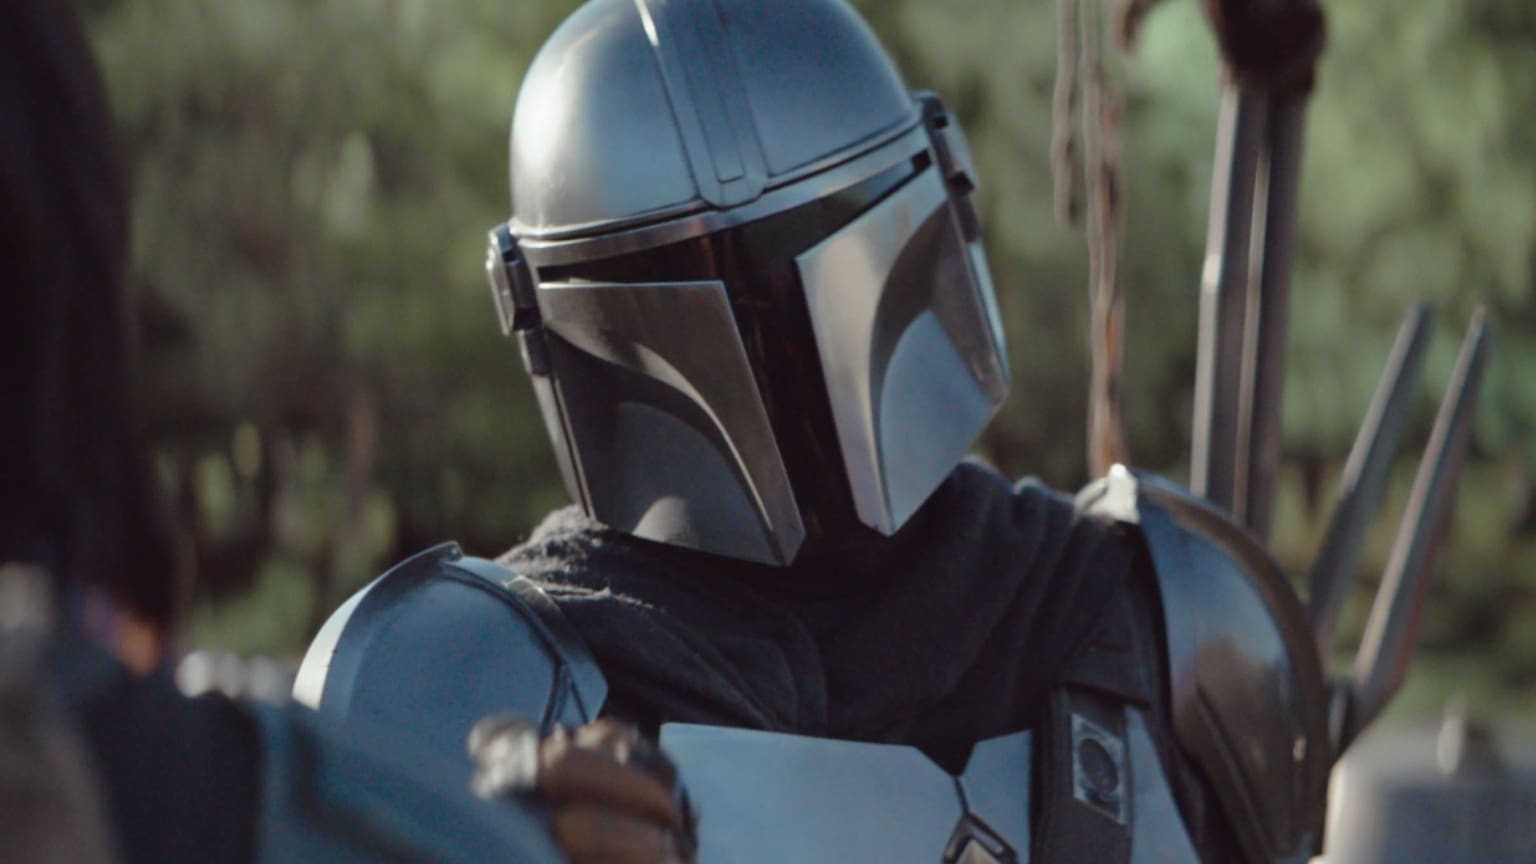 6 Things We're Excited About from the Latest Trailer for The Mandalorian